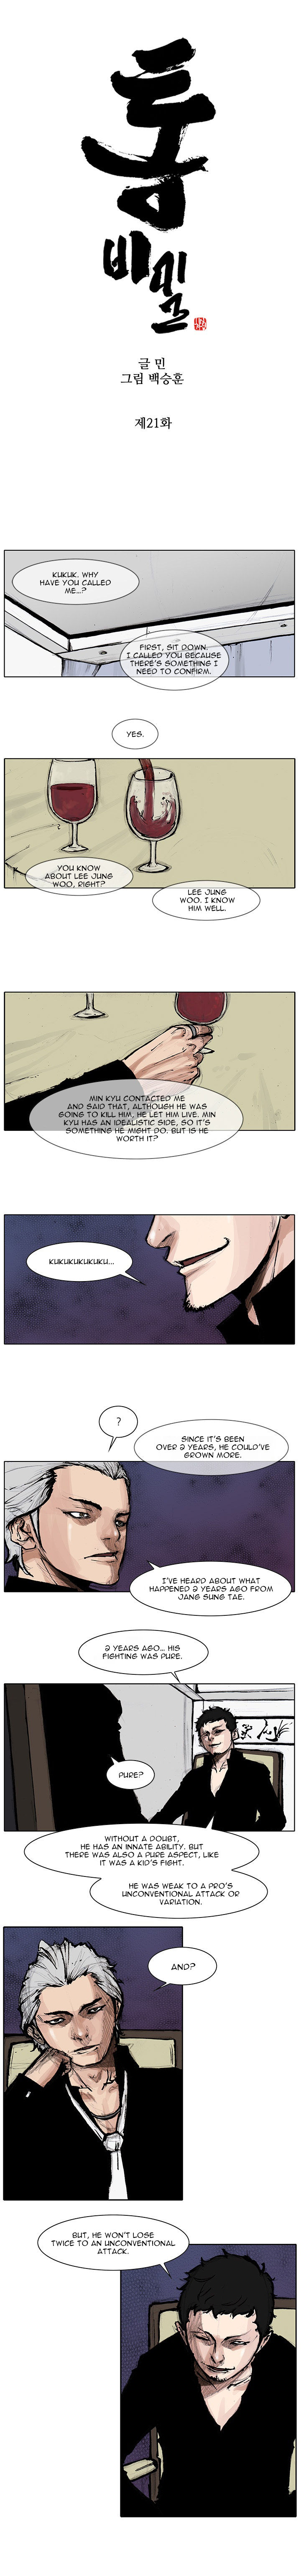 Tong - Chapter 53